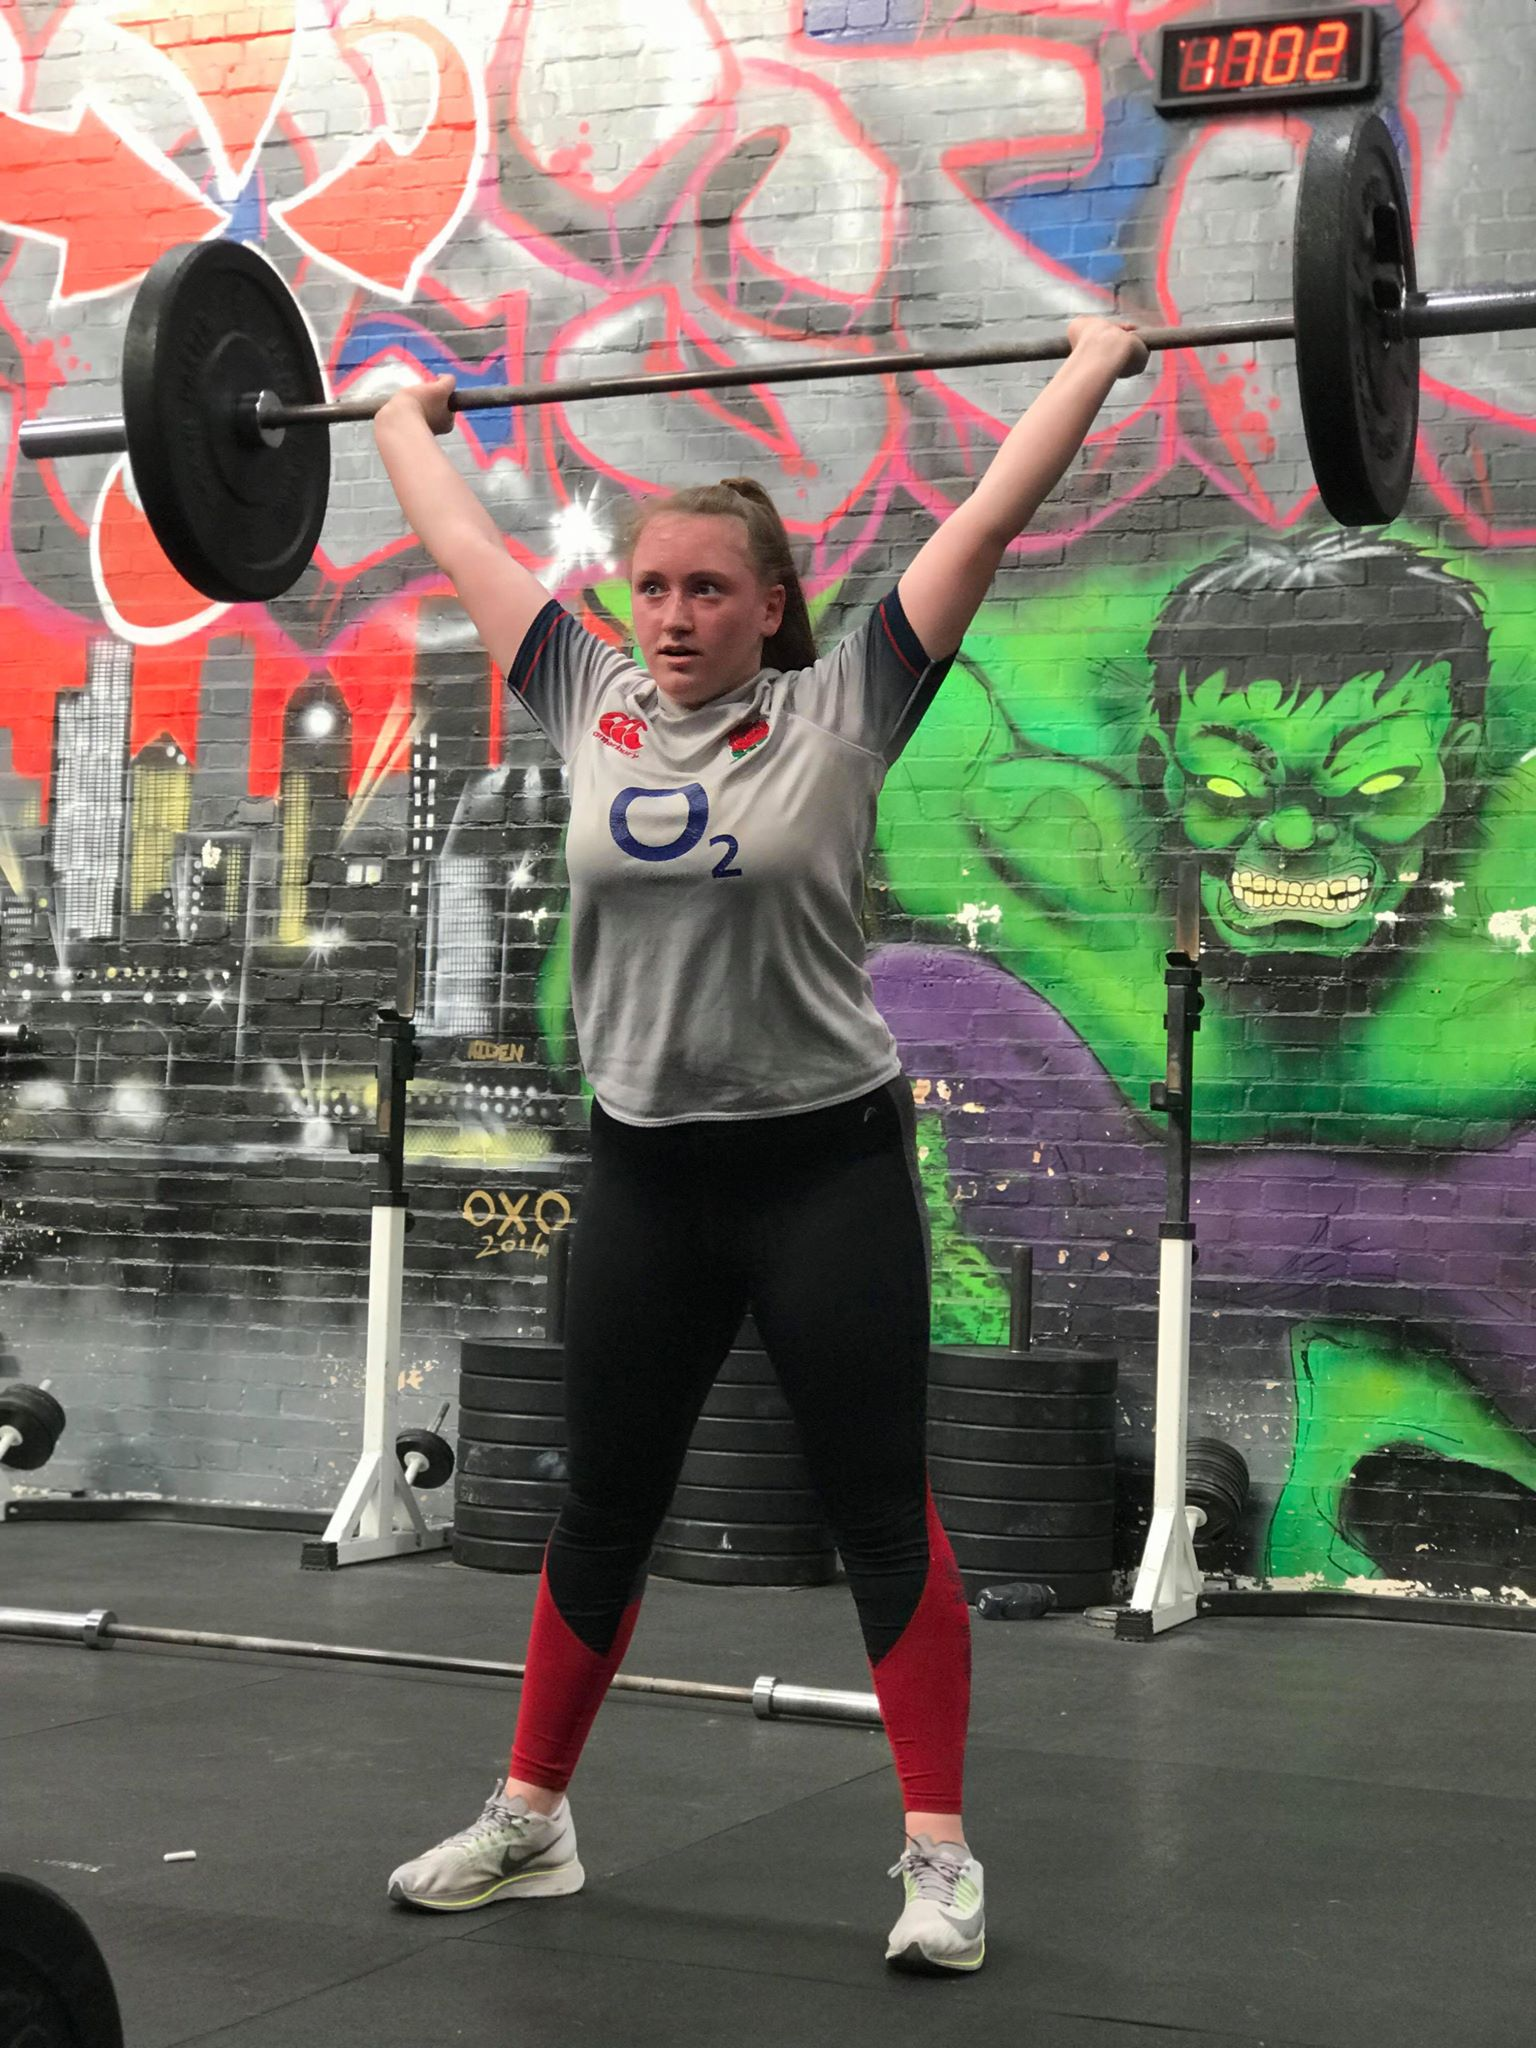 Catherine Achieves Durham County RFU U18s Girls' Team Dream with Crossfit!